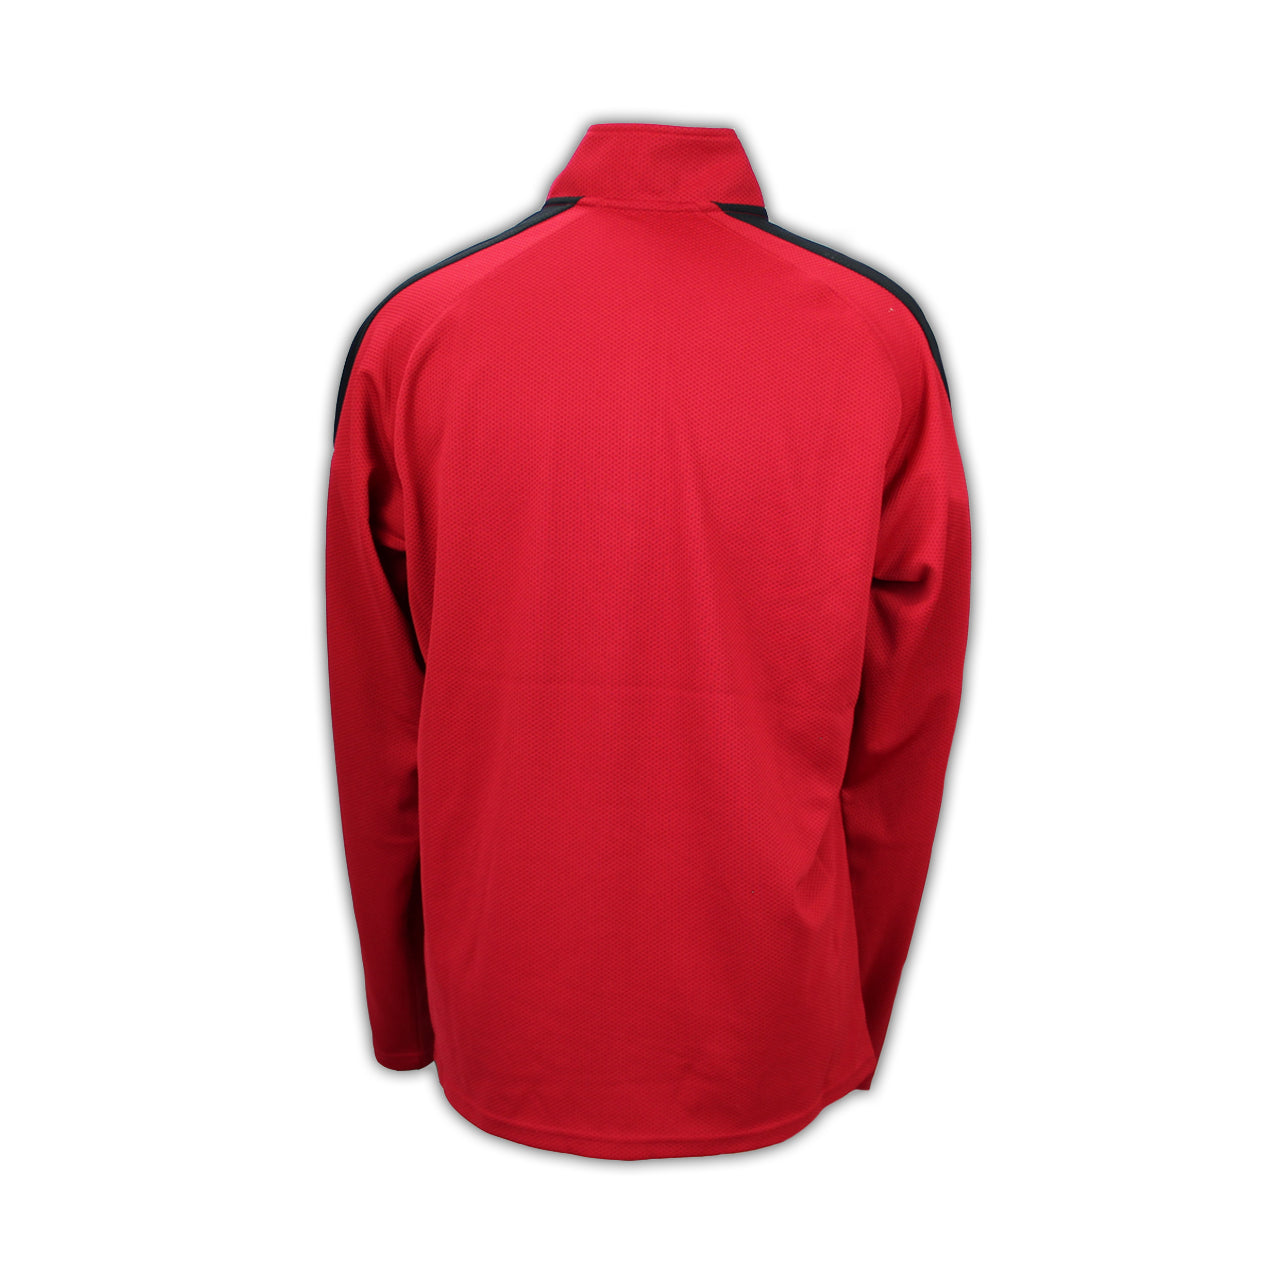 Picture of 2020 Mecum Men's Logo Quarter Zip Pullover back